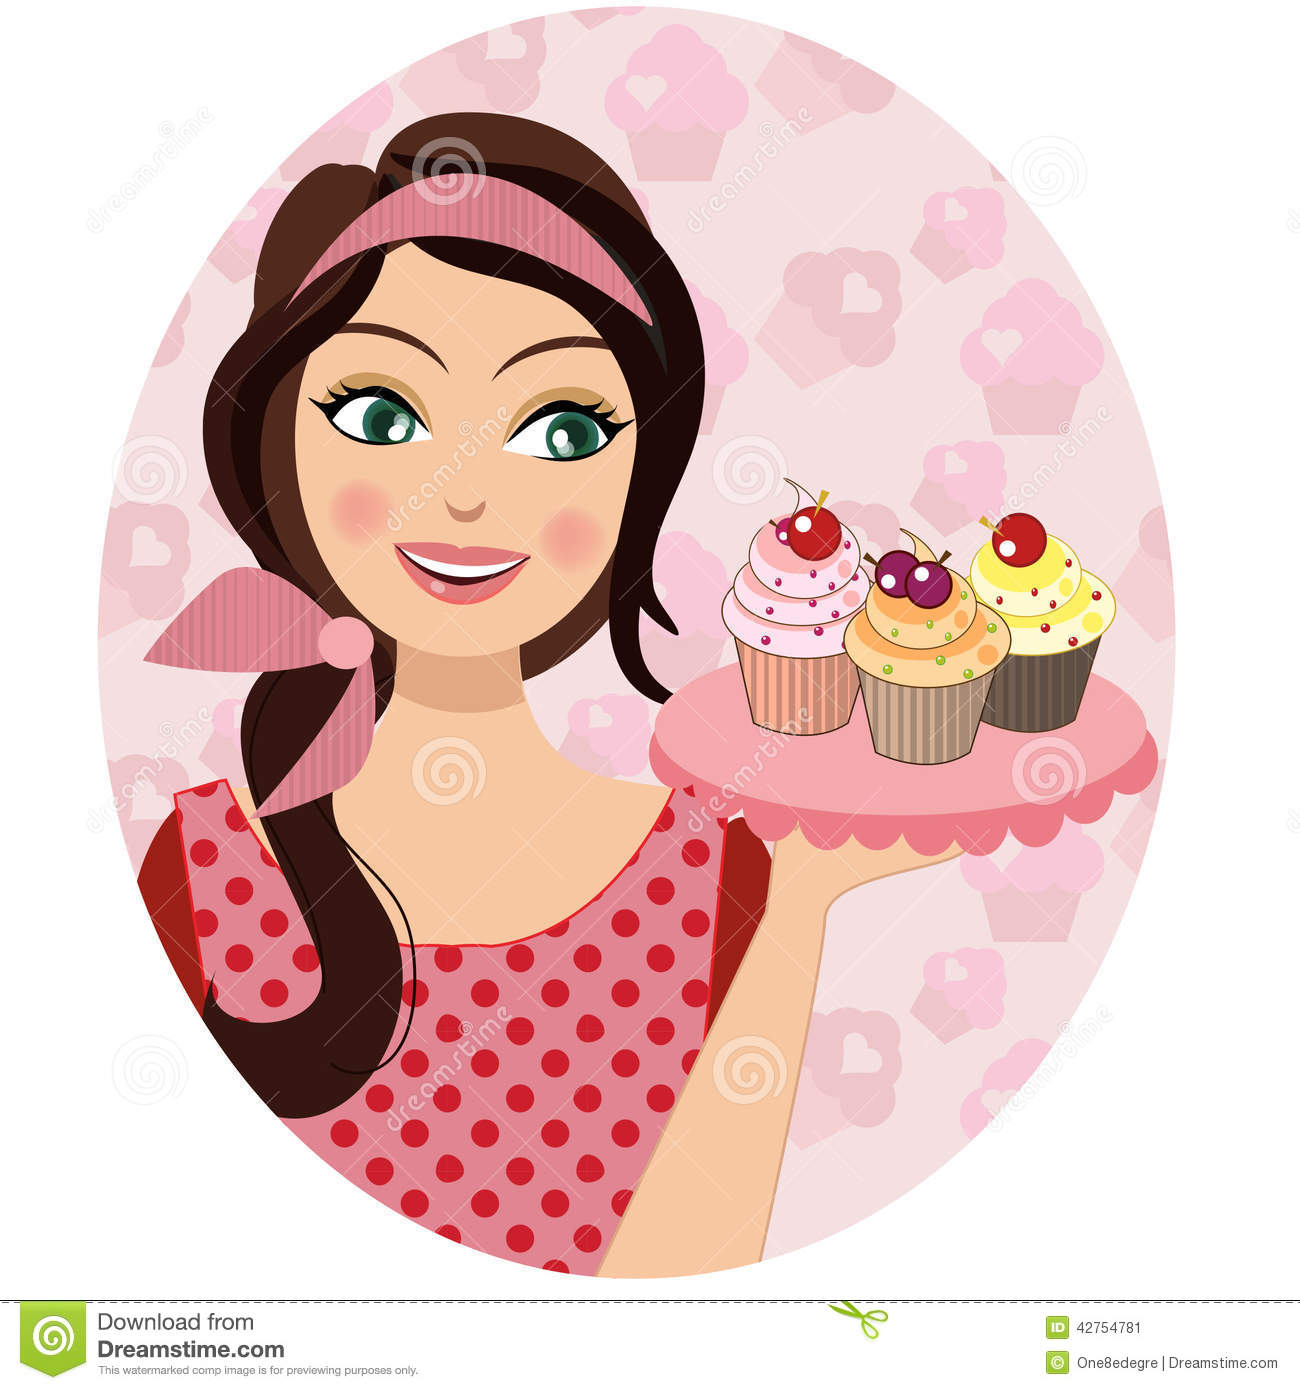 A Retro Vintage Portrait Of Woman Holding Cupcakes Baker Illustration 42754781